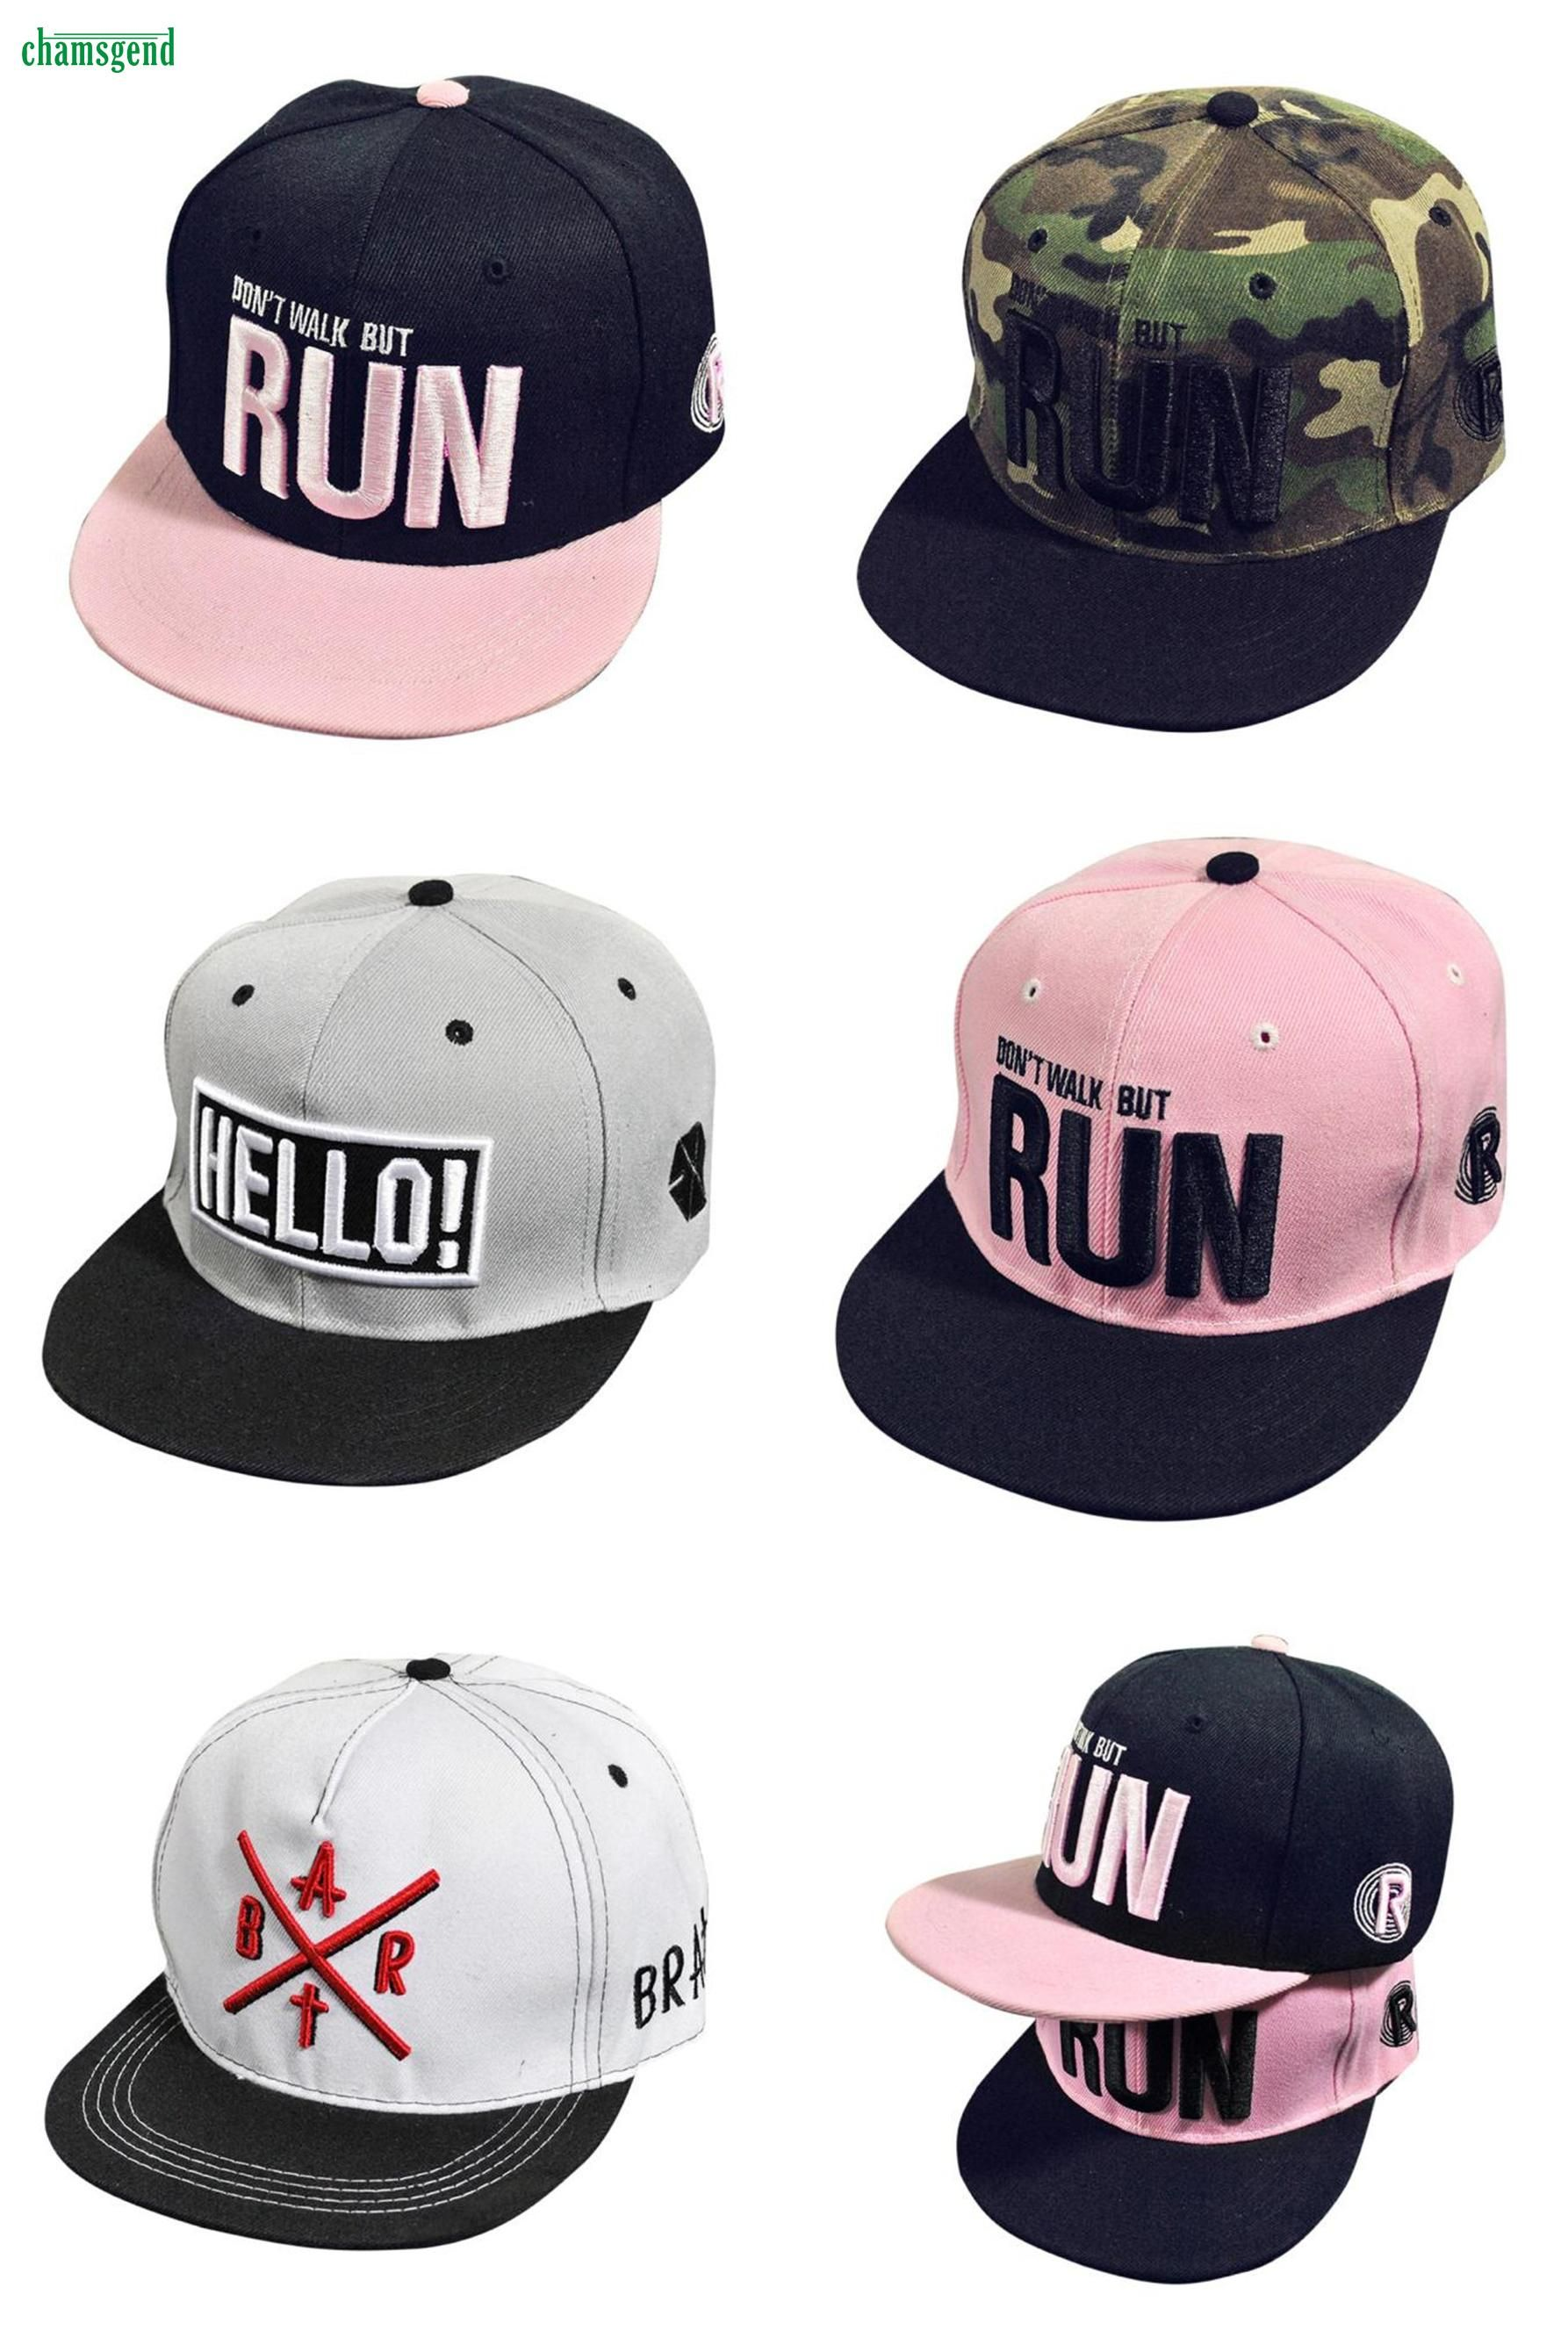 Visit to Buy  Baseball Caps CHAMSGEND WillBeen Fashion Embroidery Snapback  Boy Hiphop Hat Adjustable ab176f6870